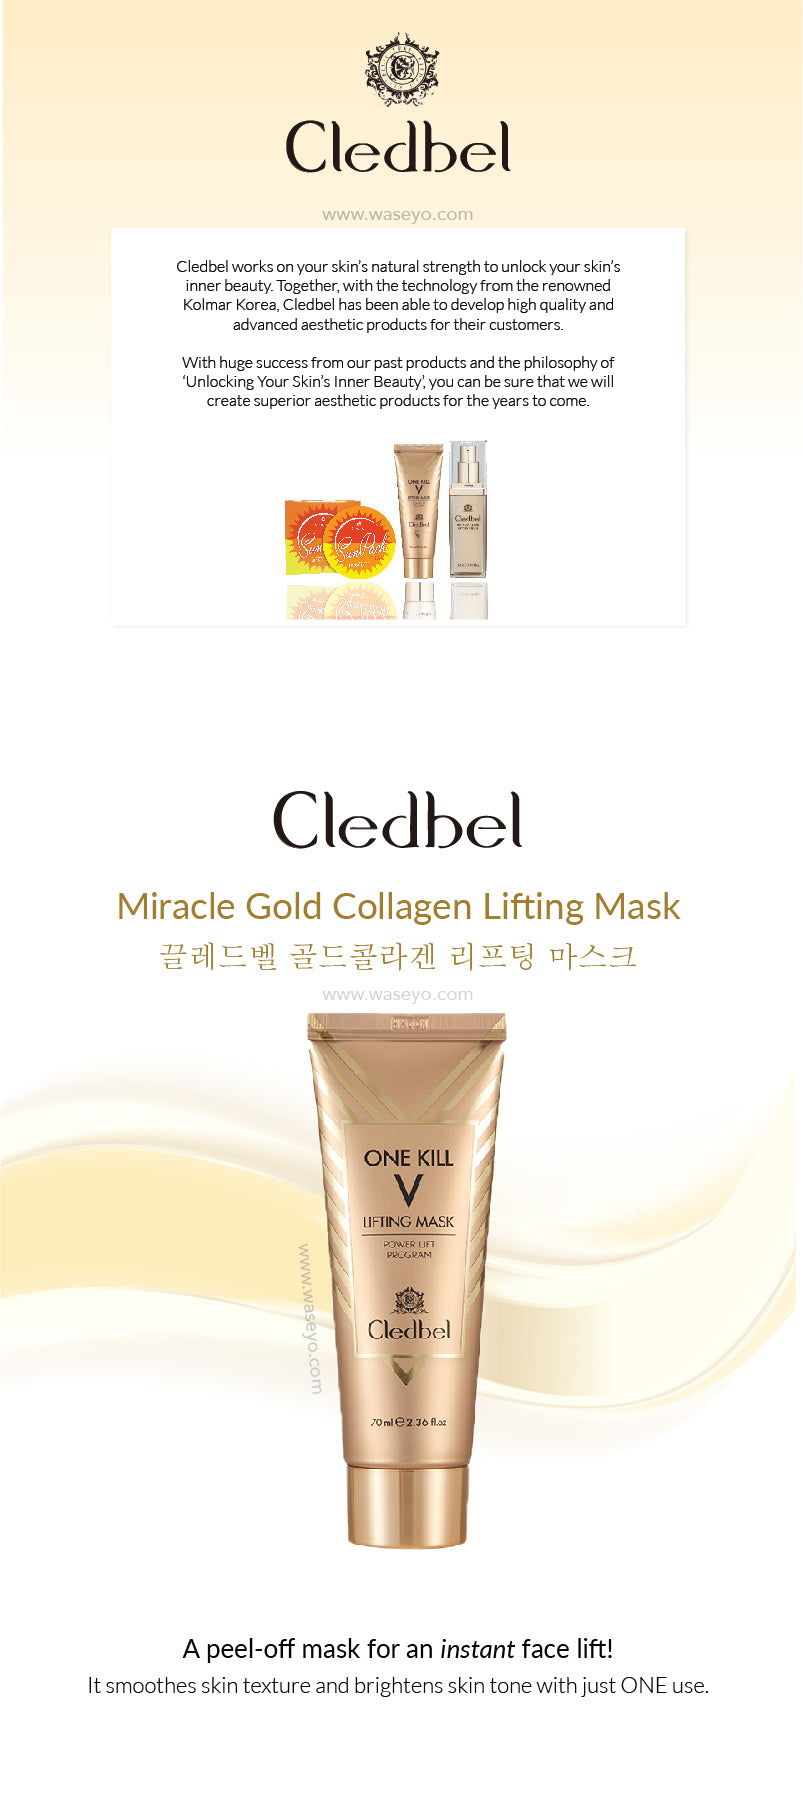 Cledbel from Korea, works on your skin's natural strength to unlock your skin's inner beauty. No.1 Korean Lifting Mask. Formulated with Gold Collagen to provide the best lifting effect for your skin.